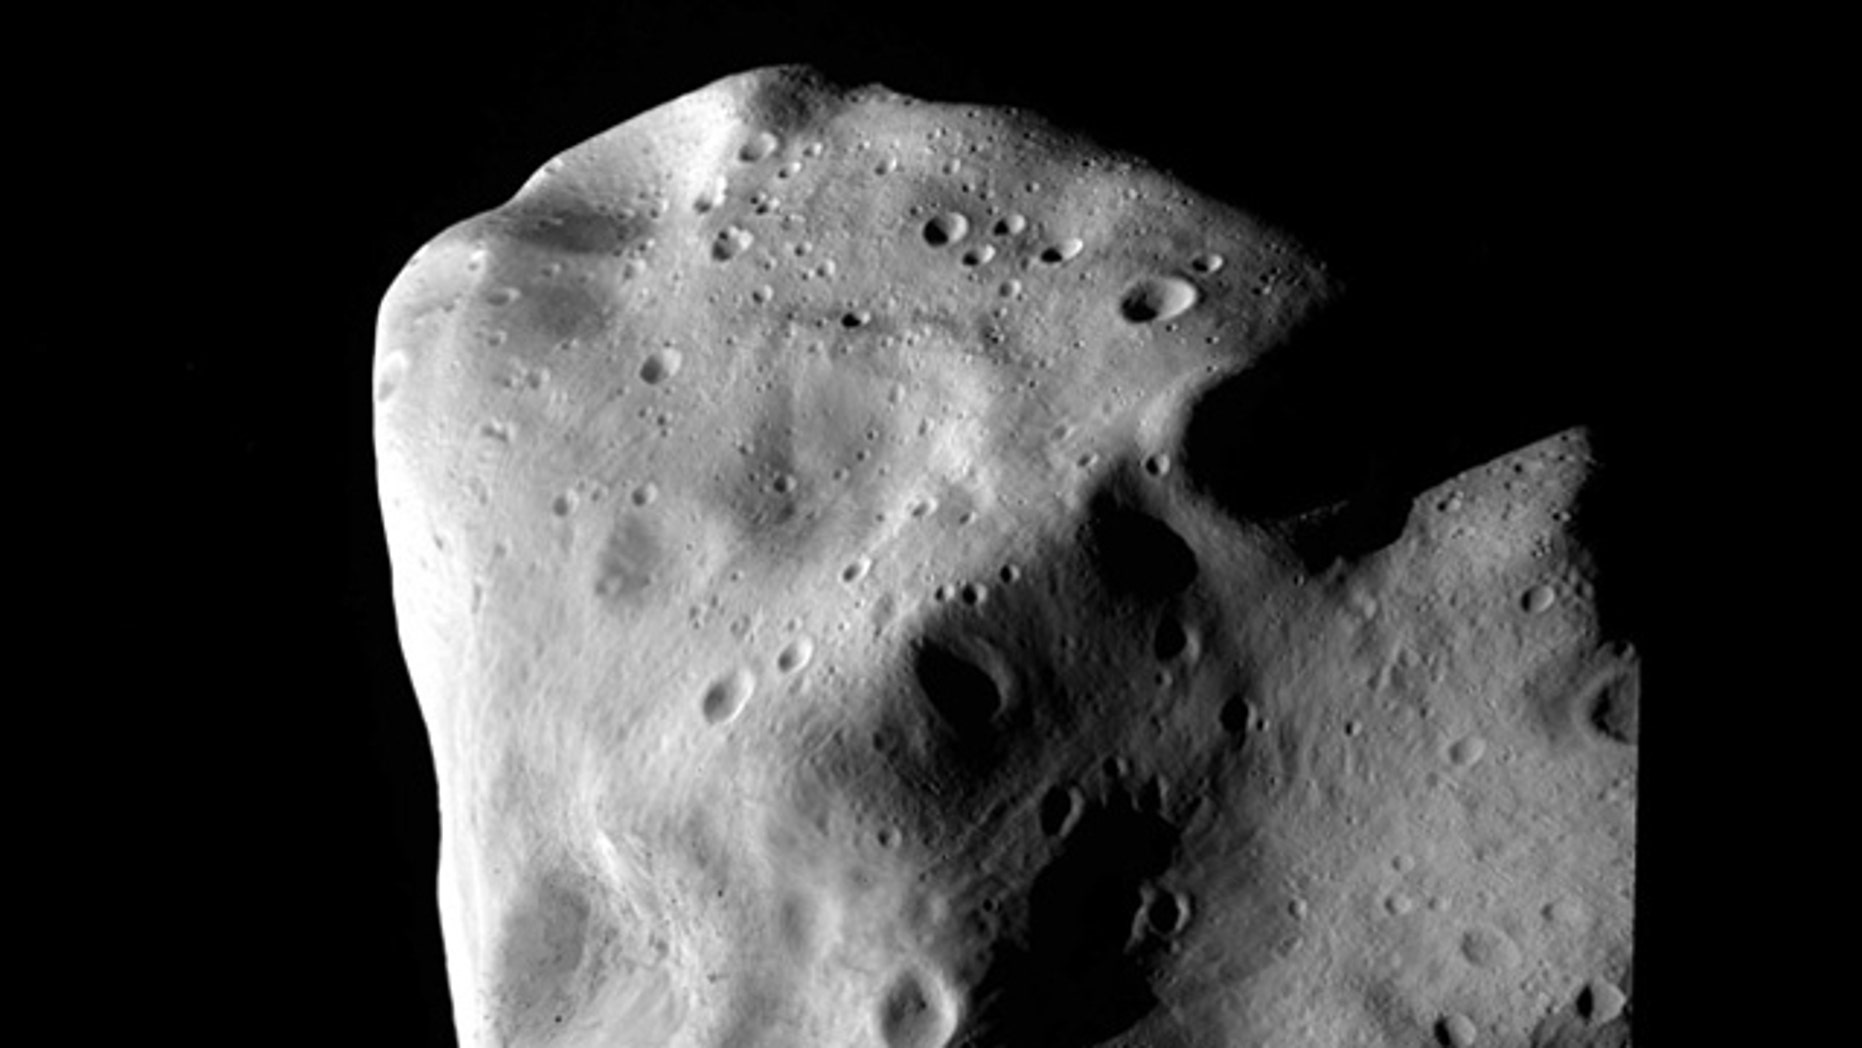 The asteroid Lutetia at closest approach.